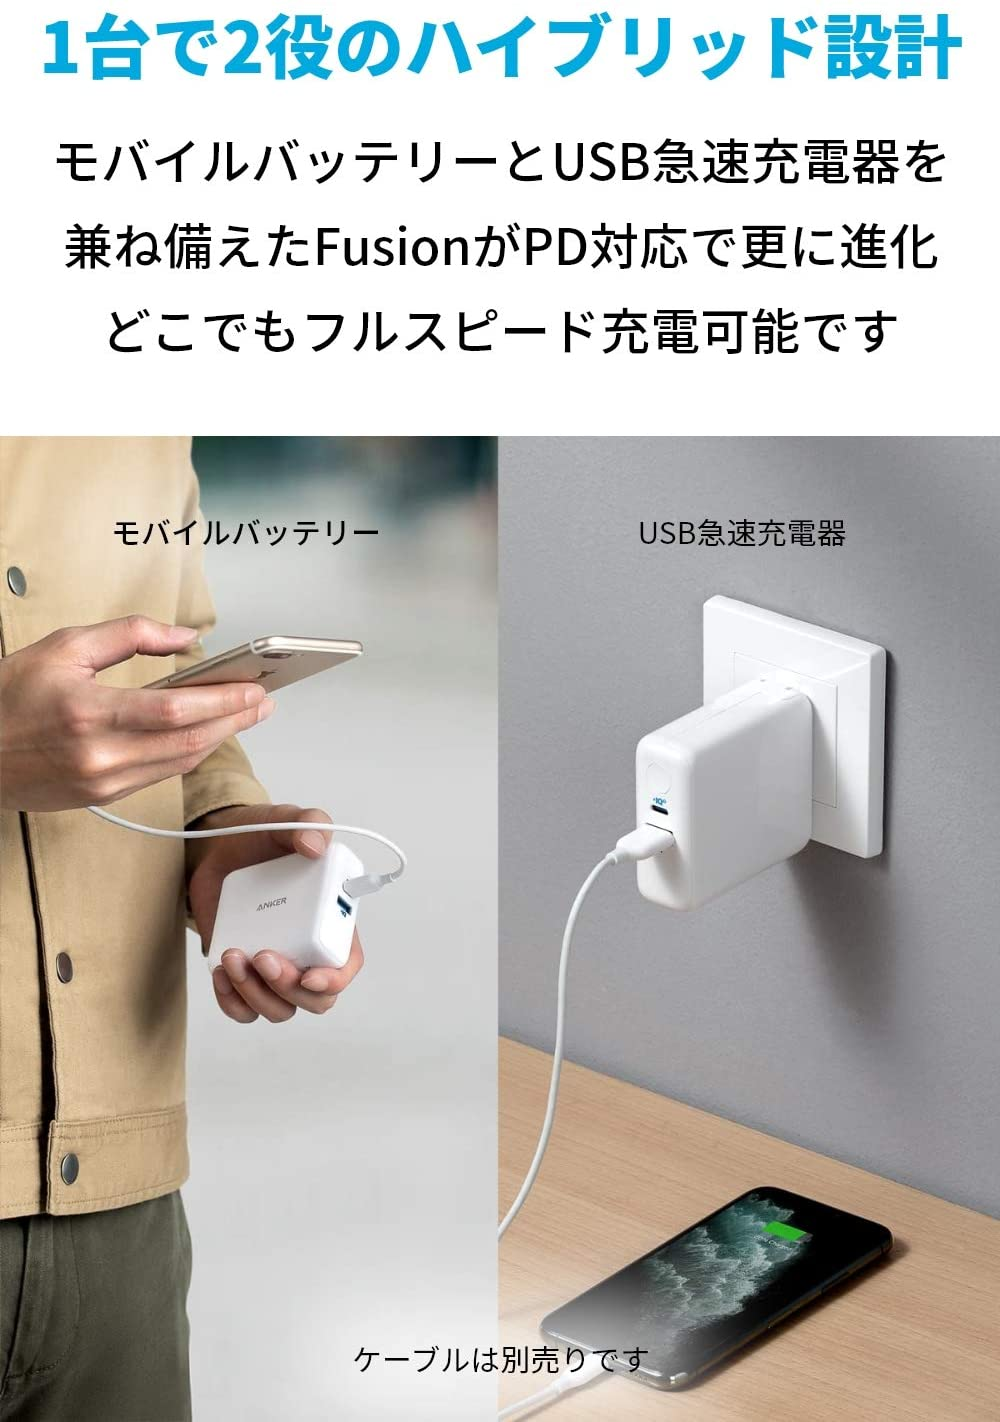 Anker PowerCore Fusion lll 5000